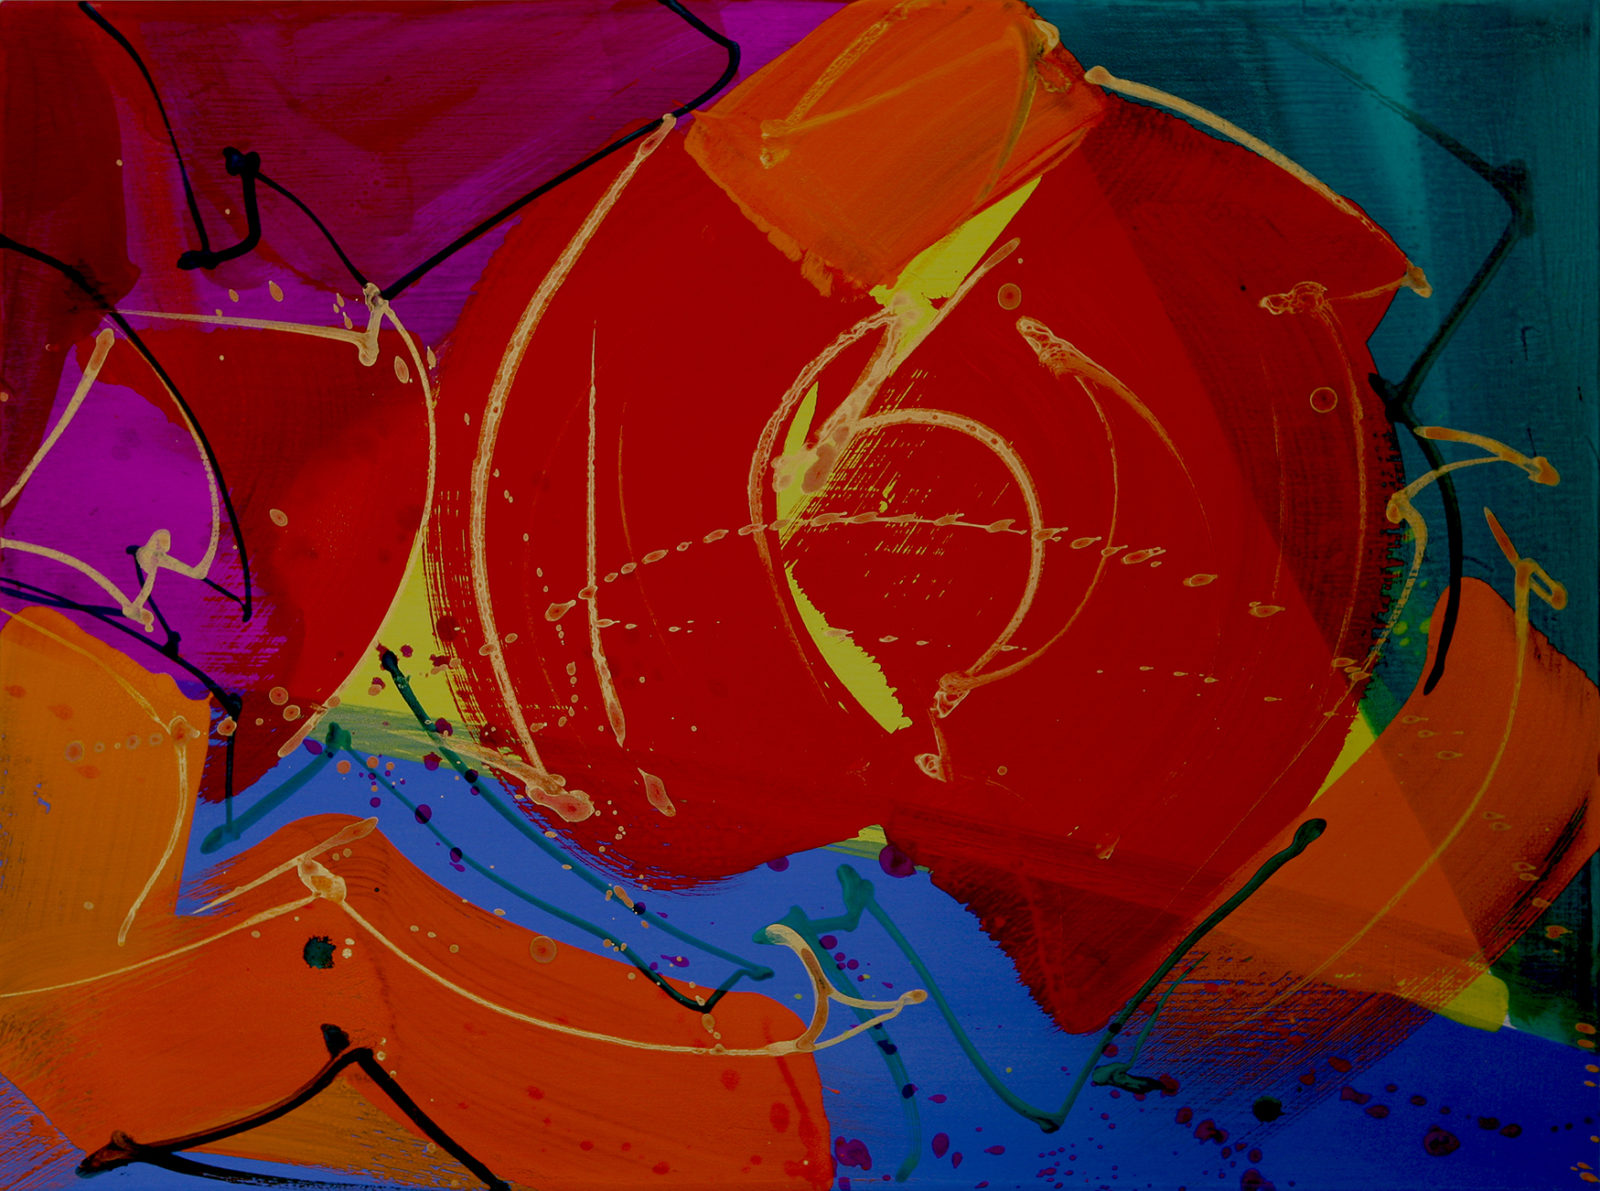 """24x18"""" gouache painting on canvas, warm reds and blues + calligraphic brush work"""